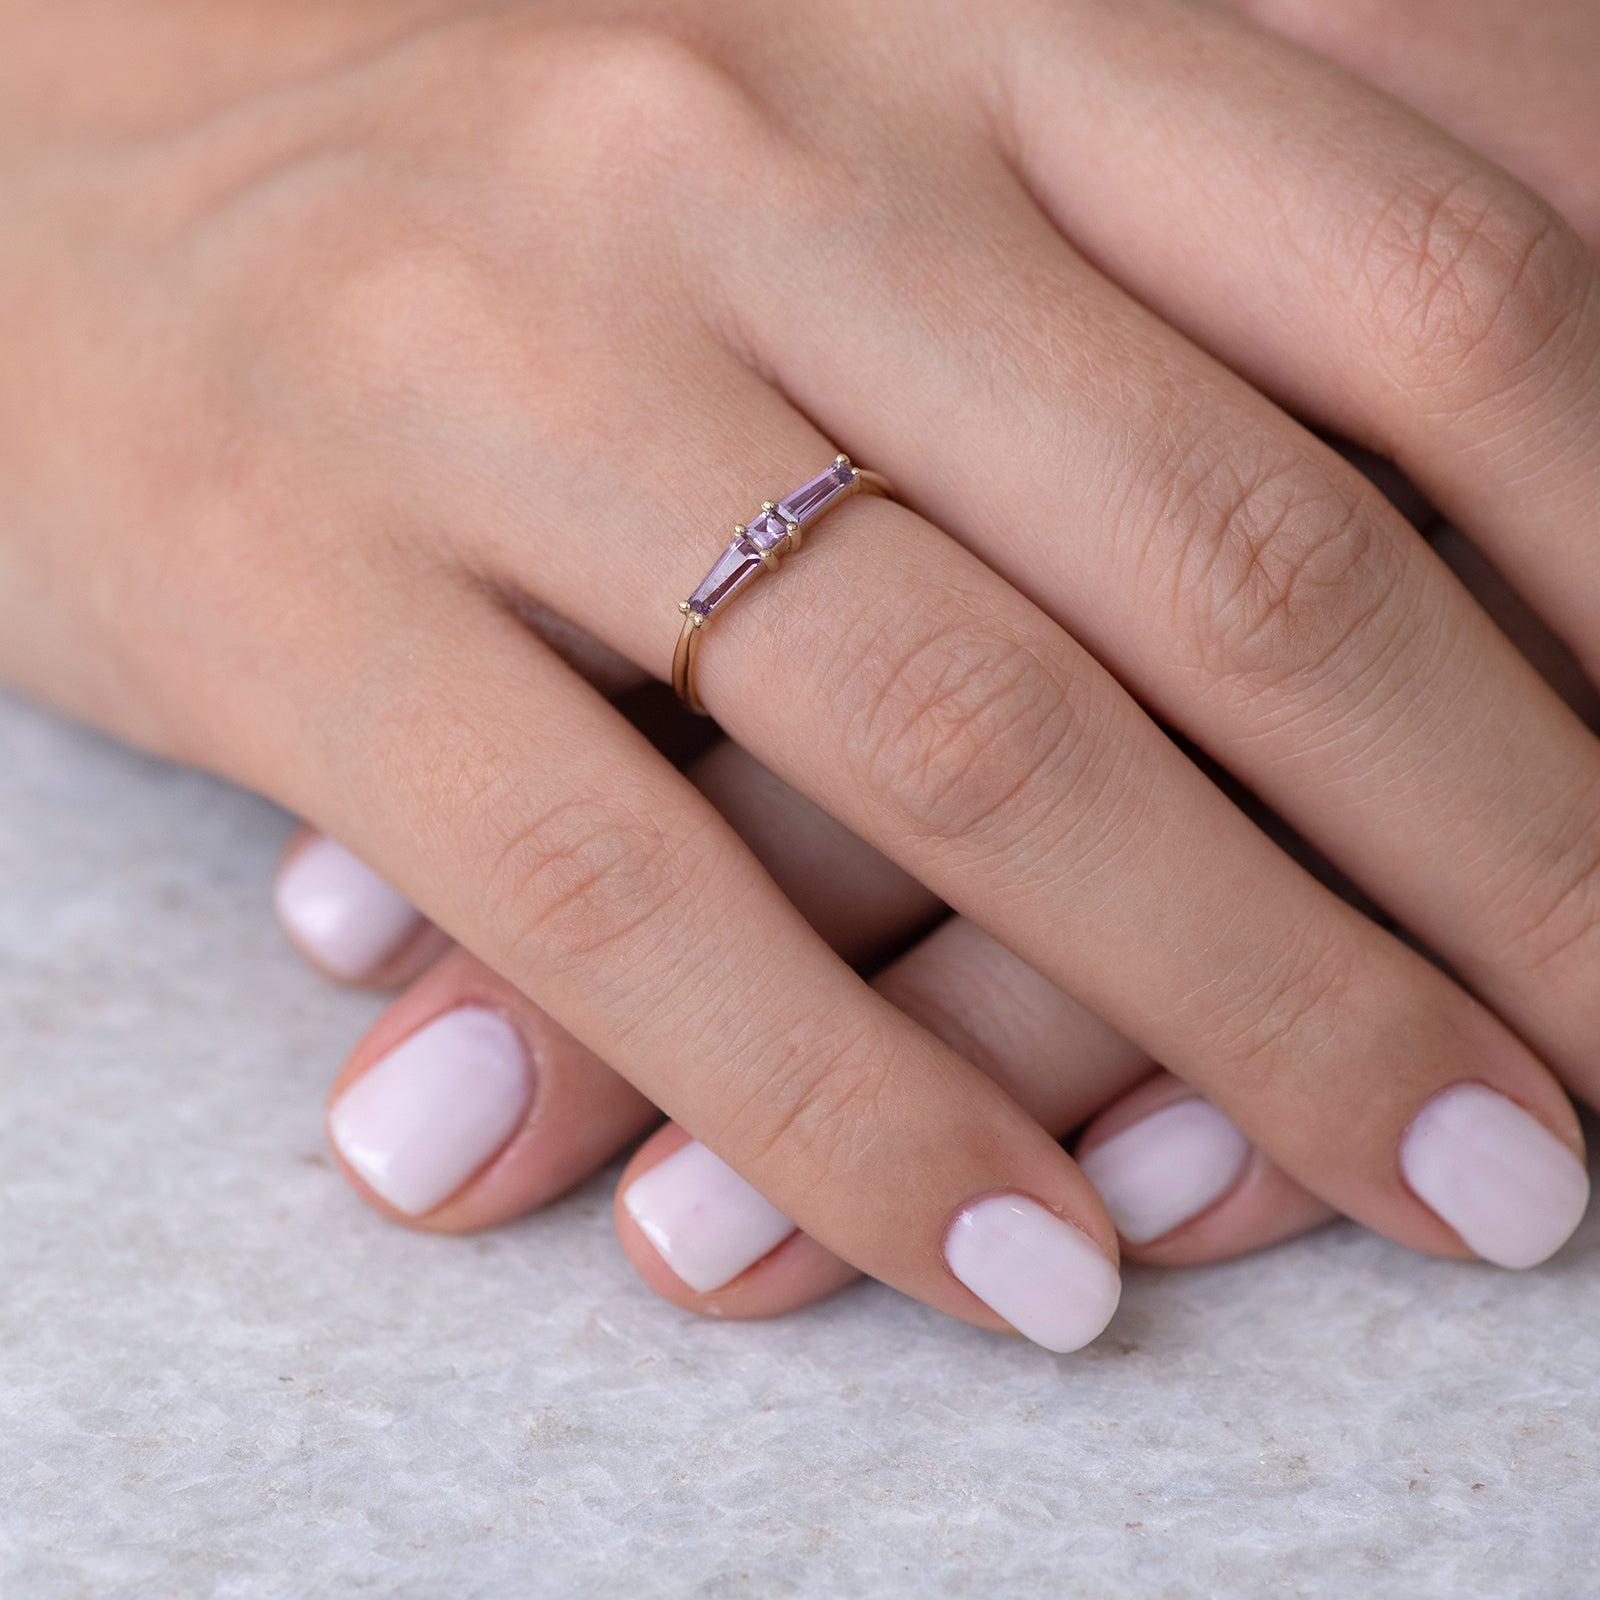 Lilac needle baguette ring4